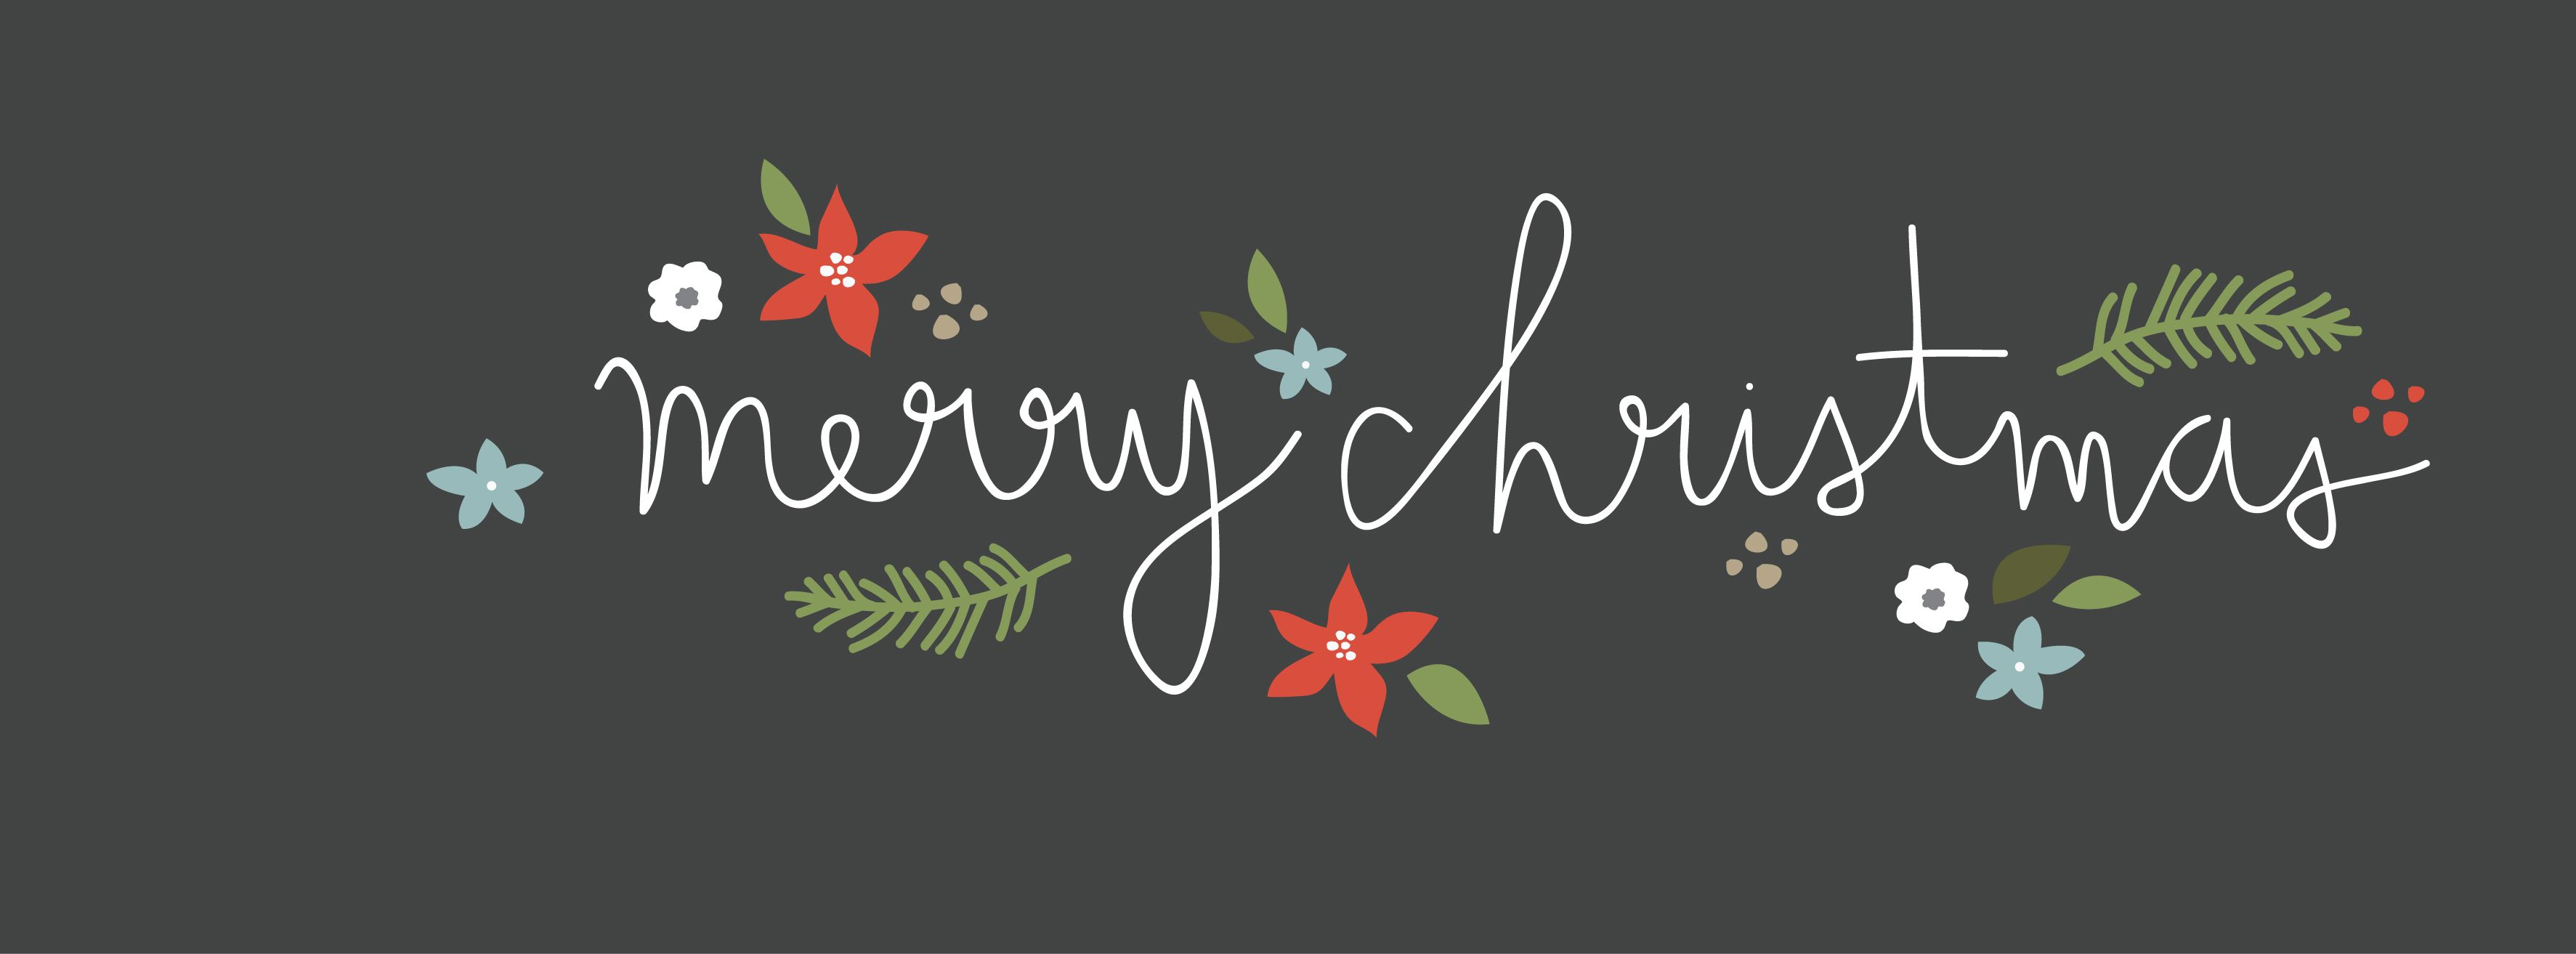 Christian Facebook Covers Anh Bia Giang Sinh | Christmas - FB ...